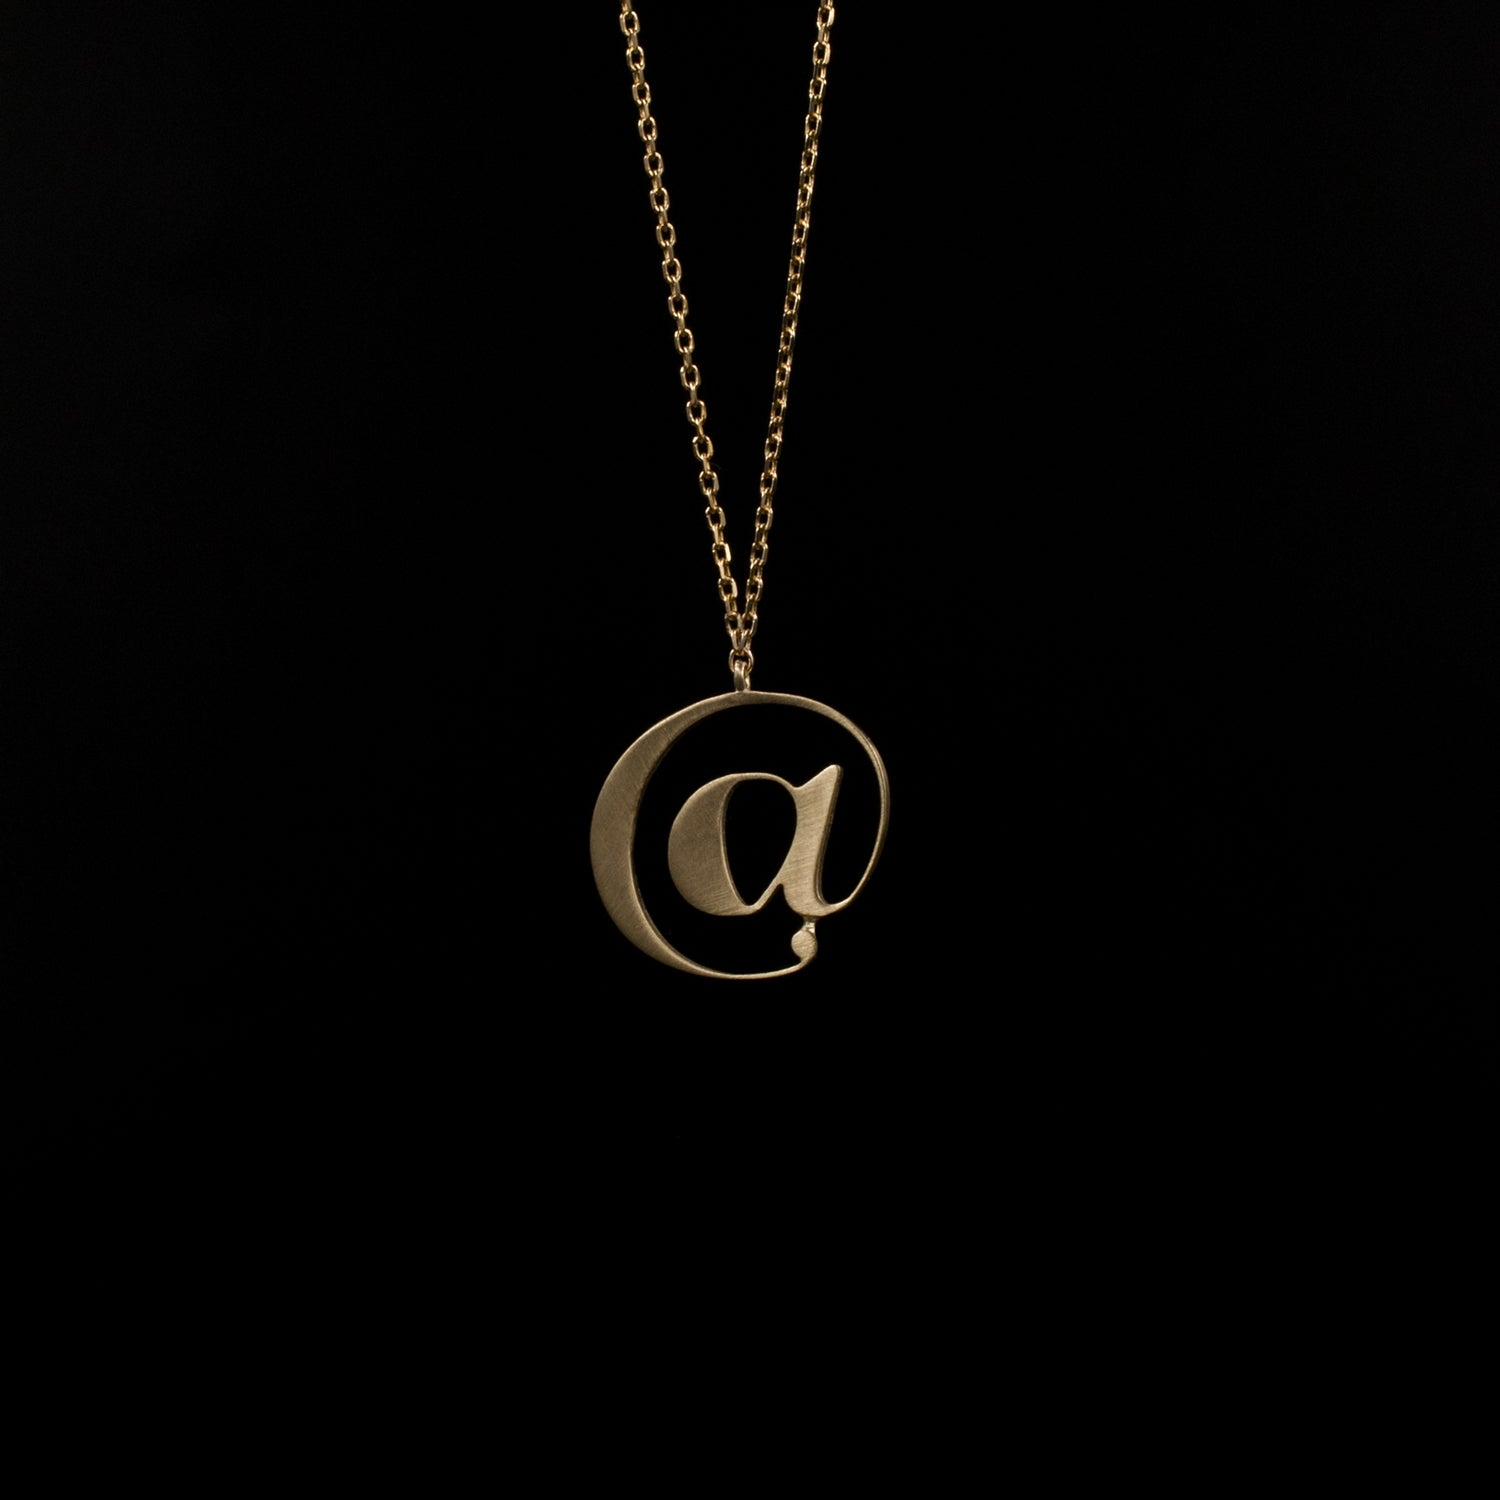 @ Fancy Necklace - Designed by Moshik Nadav Fashion Typography